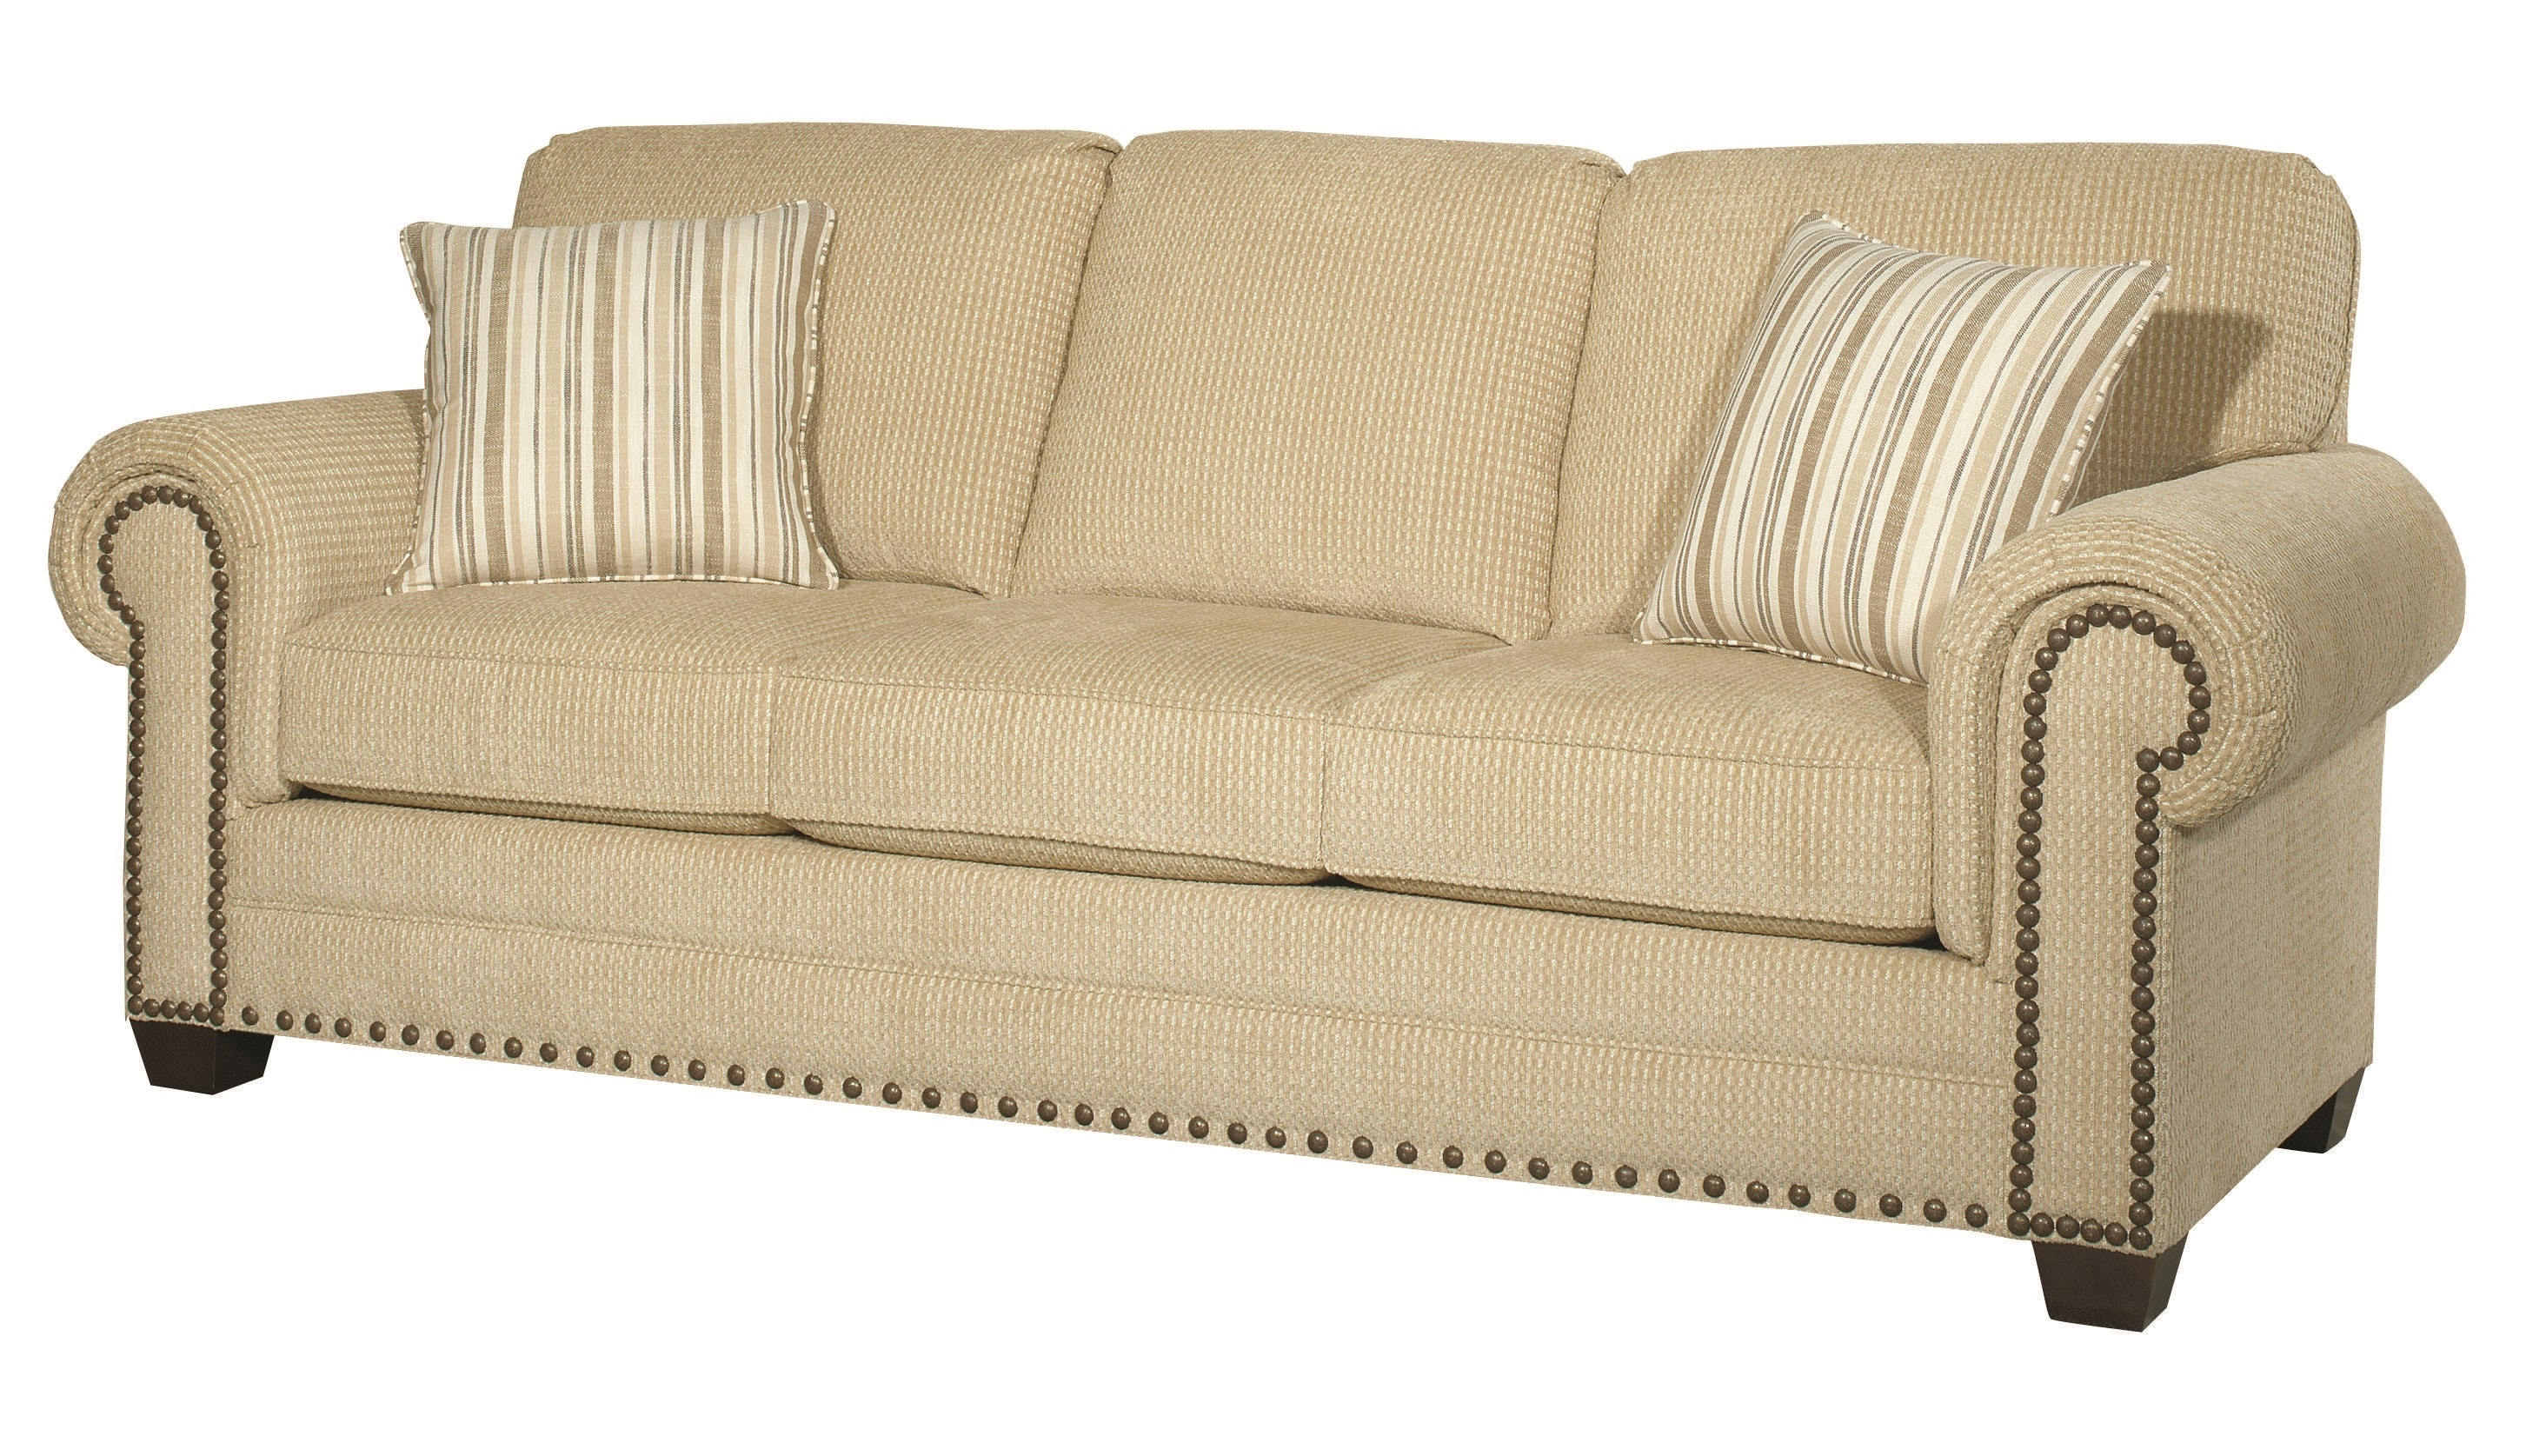 Bassett Riverton Three Seat Sofa BAS 3995